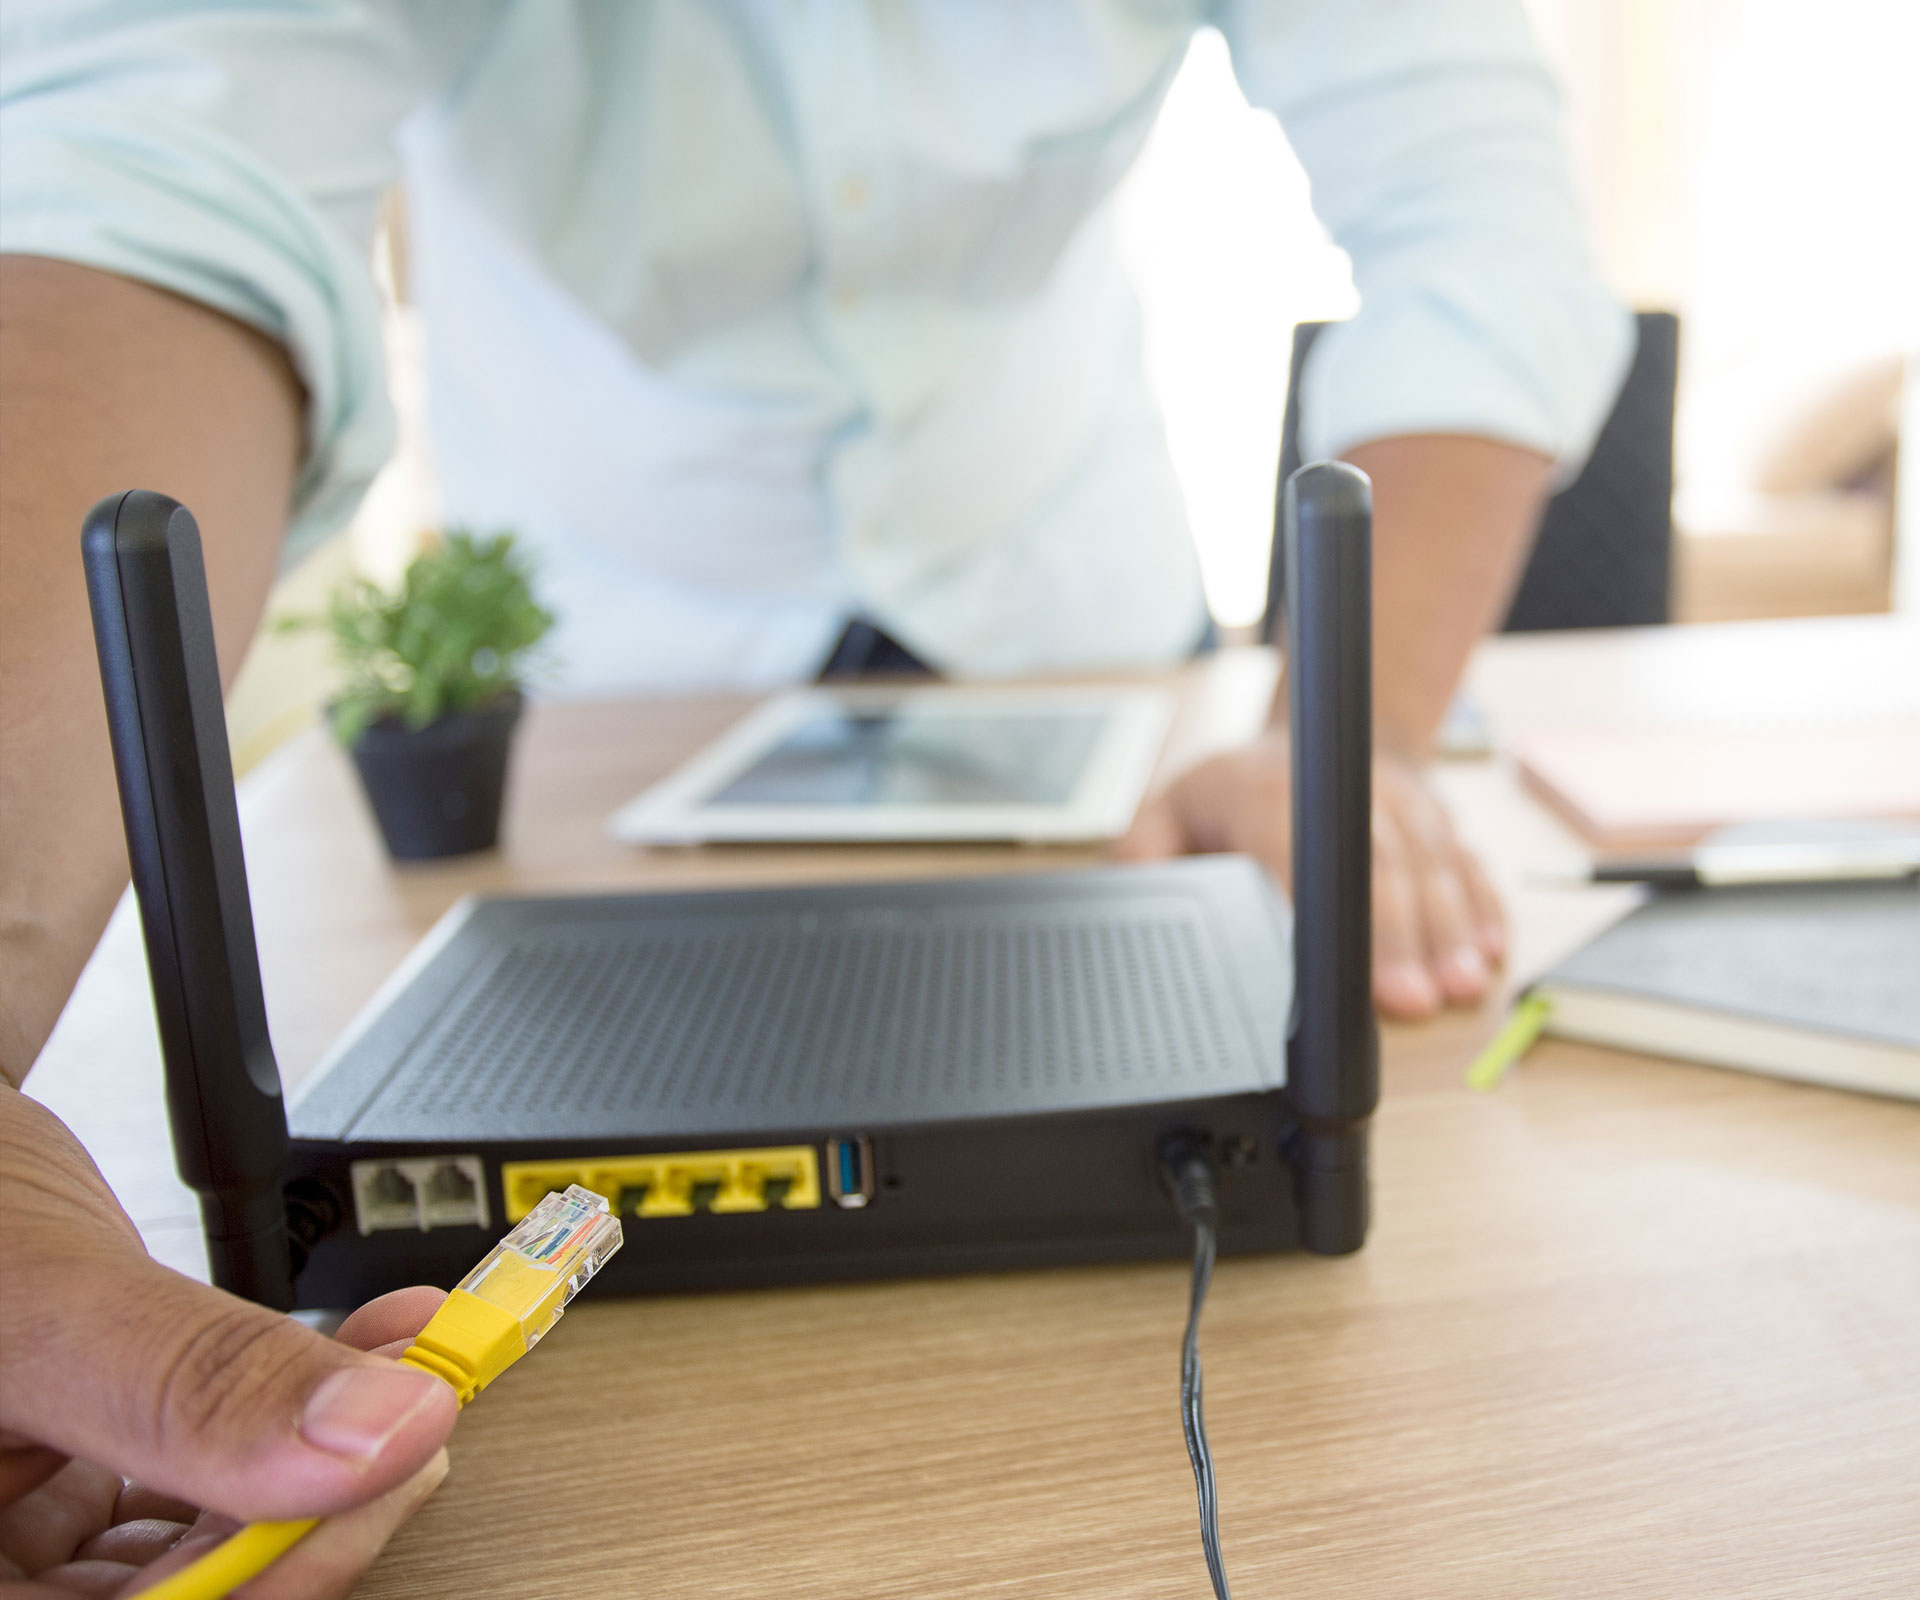 What are the most common questions that crop up when installing a router?